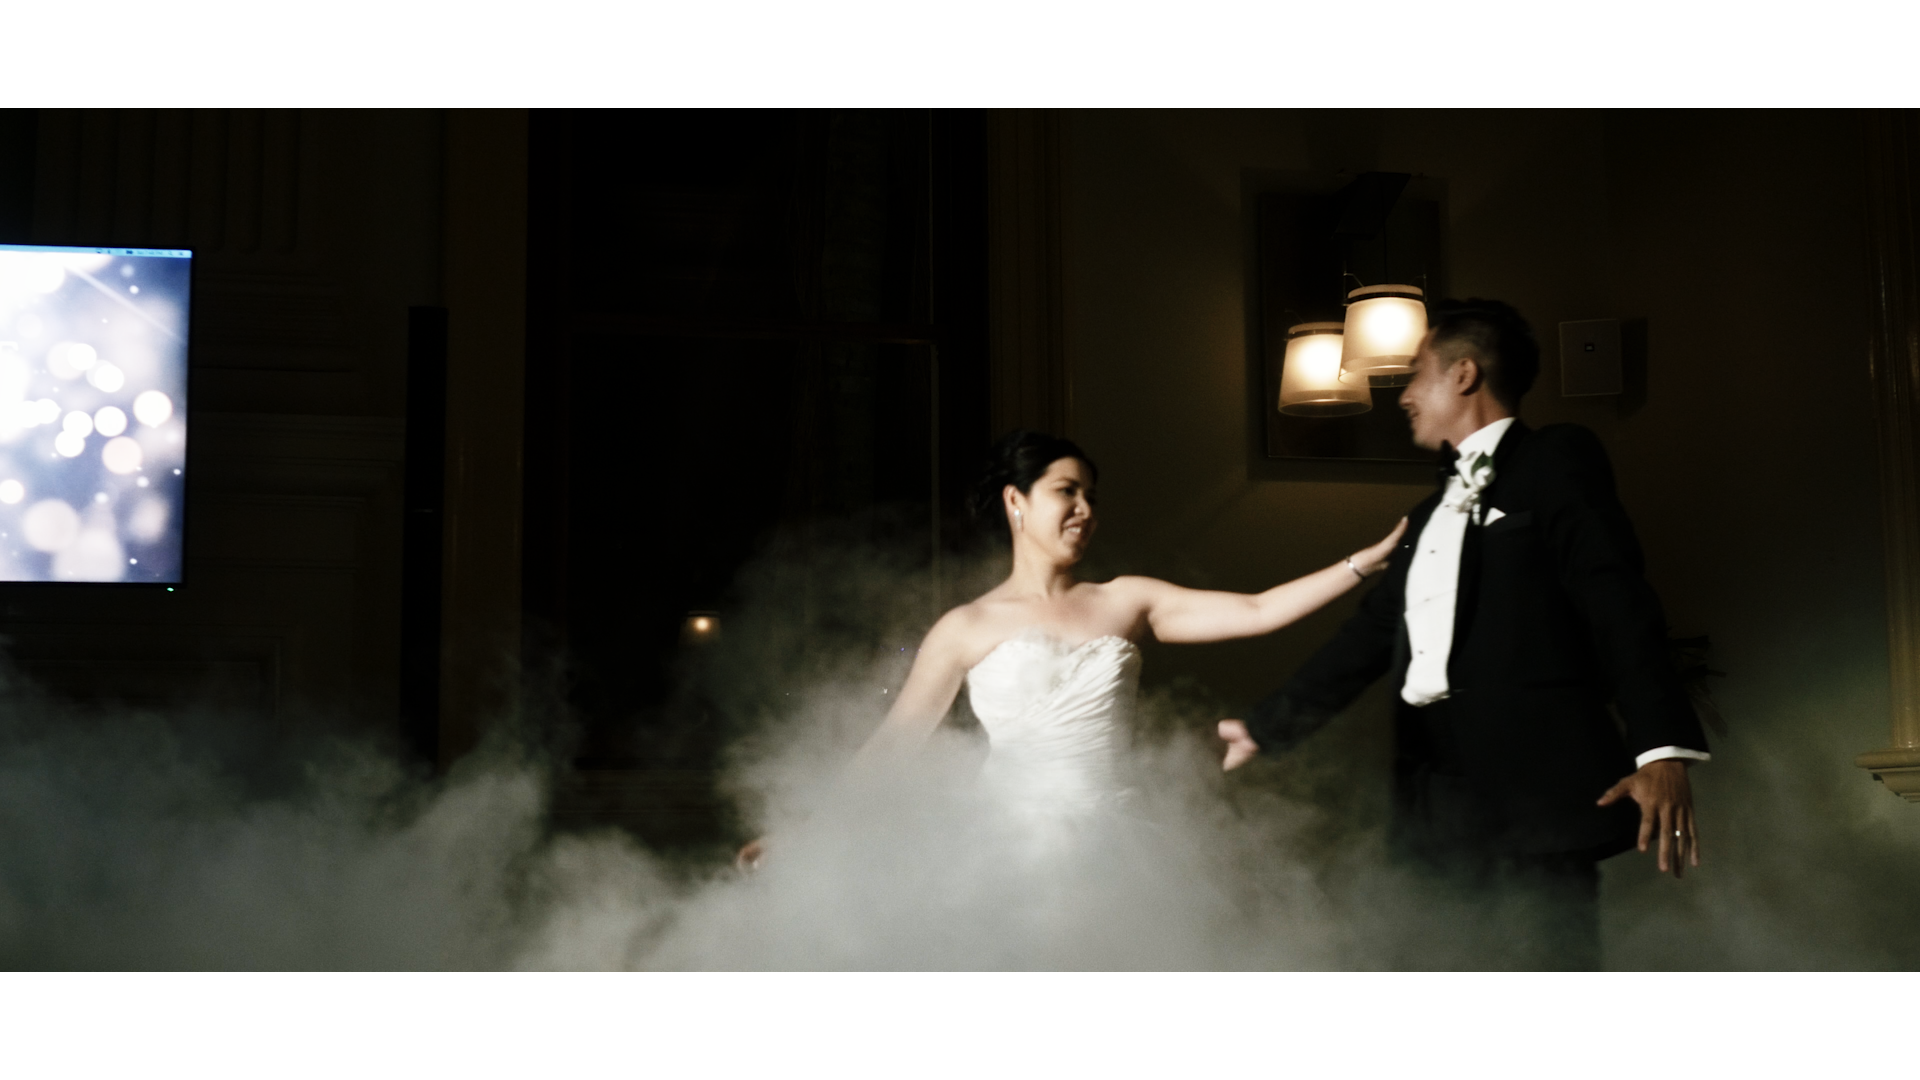 Pauline and Jack's first dance in a sea of clouds